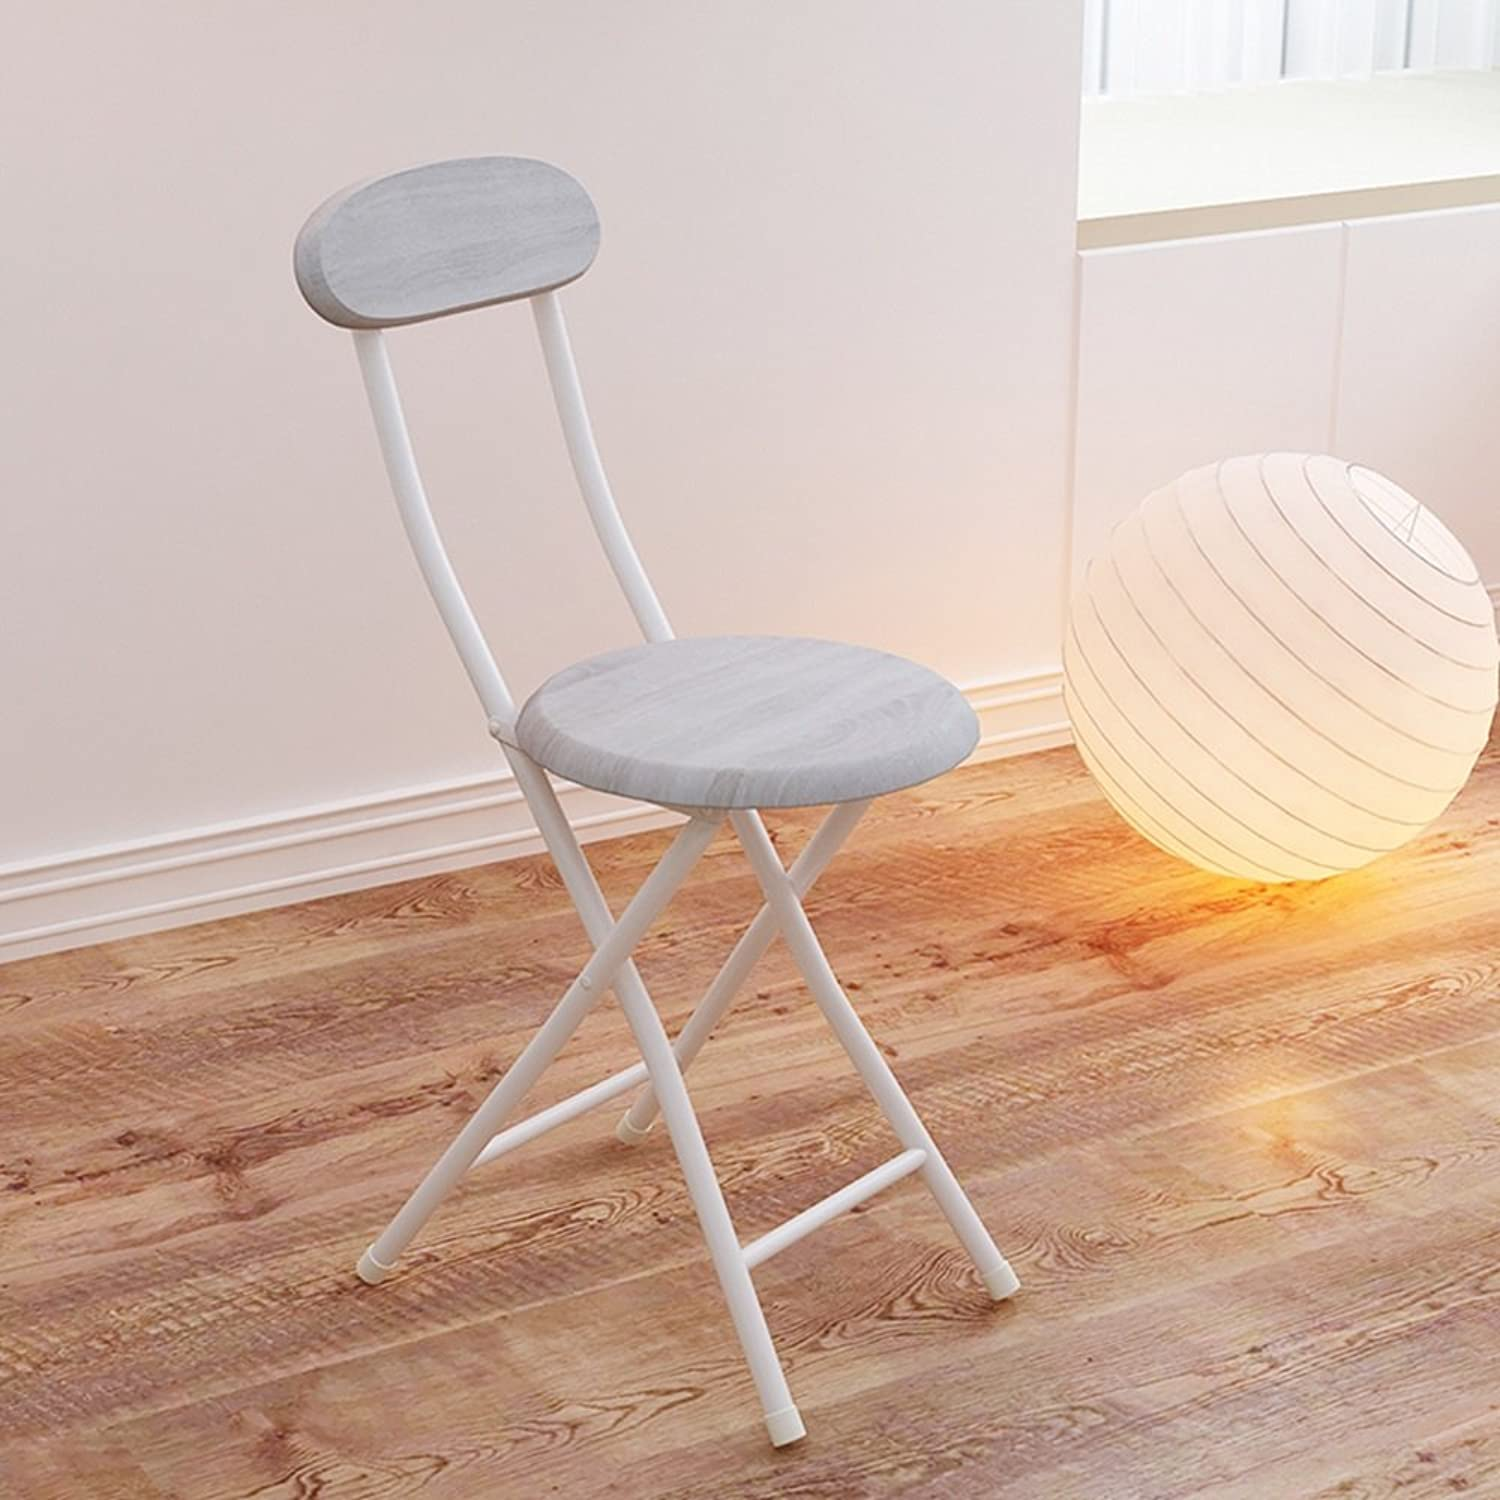 LHA Barstools Backrest Folding Stool Leisure Chair Dormitory Small Chair Home Stool Training Chair Folding Chair Chair Bar Furniture (color   B)